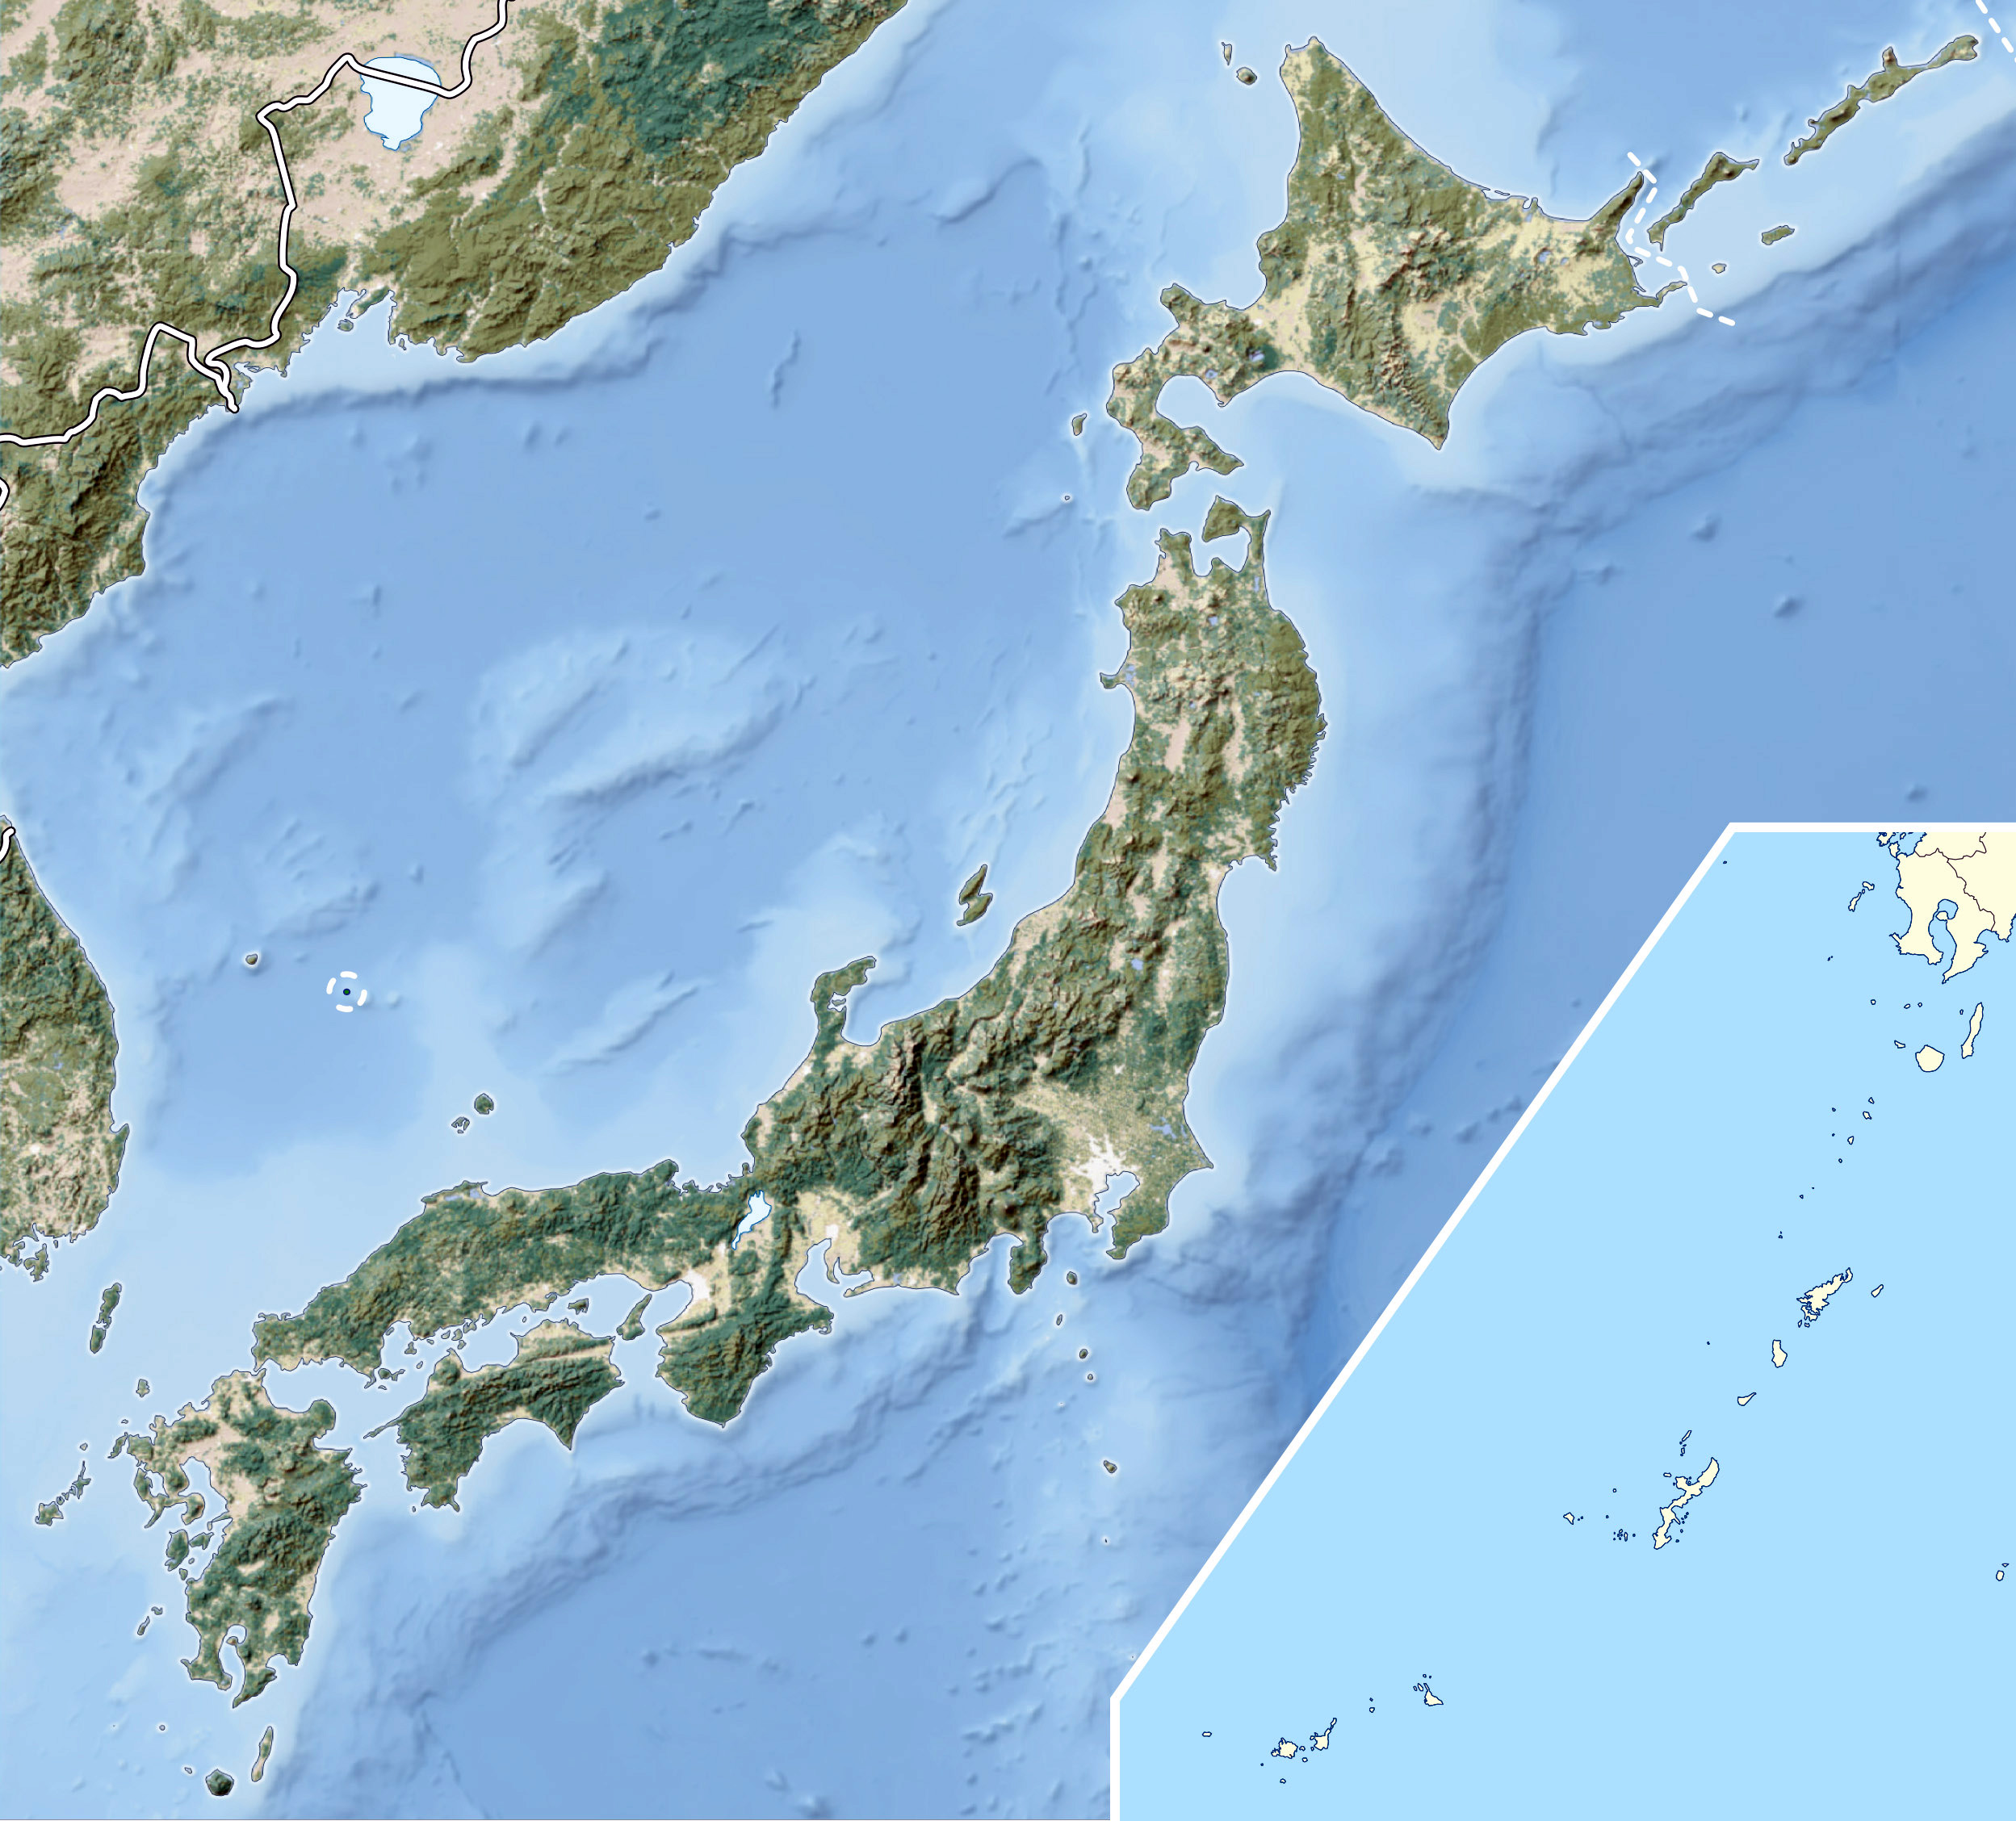 Image Of Japan Physical Features Map on weather map of japan, population density map of japan, resource map of japan, climate map of japan, physical outline map of japan, timeline of japan, physical features geography, bodies of water map of japan, physical description of japan, tourism map of japan, vegetation map of japan, political map of japan, cities map of japan, latitude map of japan, physical activities of japan, region map of japan, colour map of japan, religion map of japan, language map of japan, physical characteristics of japan,